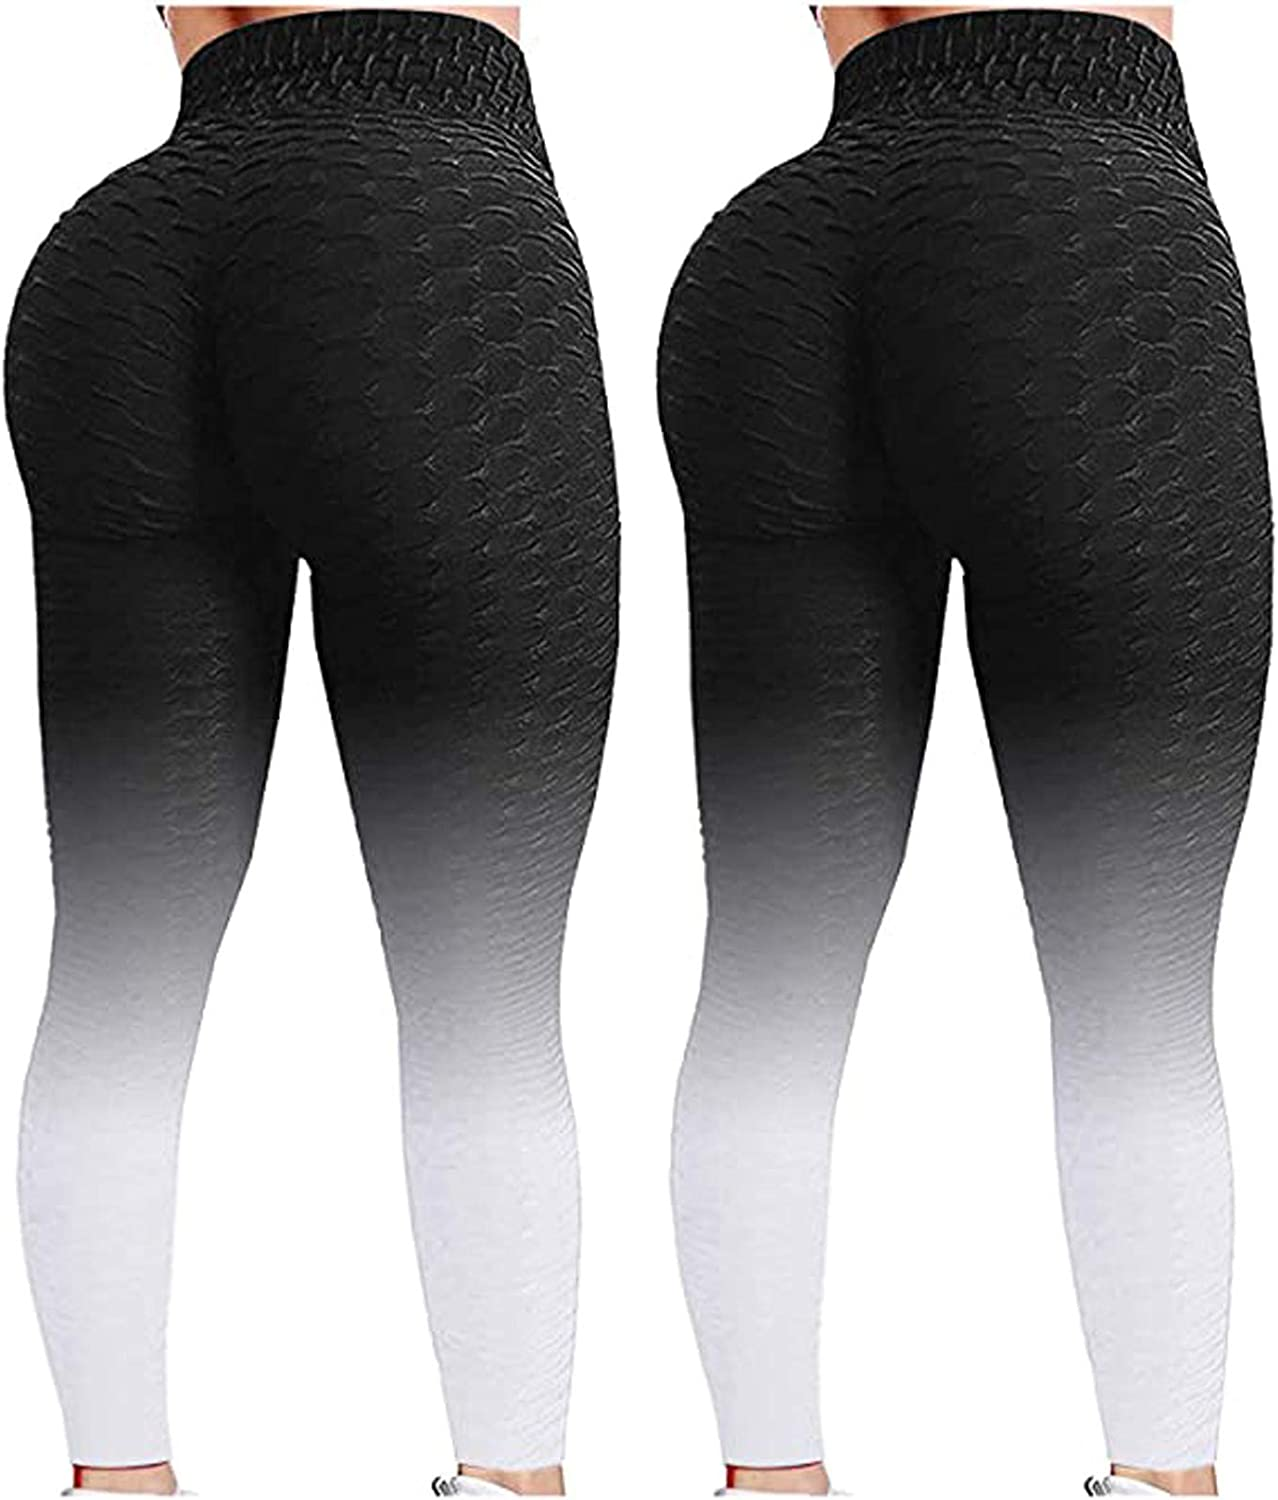 2PC Butt Lifting Anti Cellulite Leggings for Women High Waisted Yoga Pants Workout Tummy Control Sport Tights